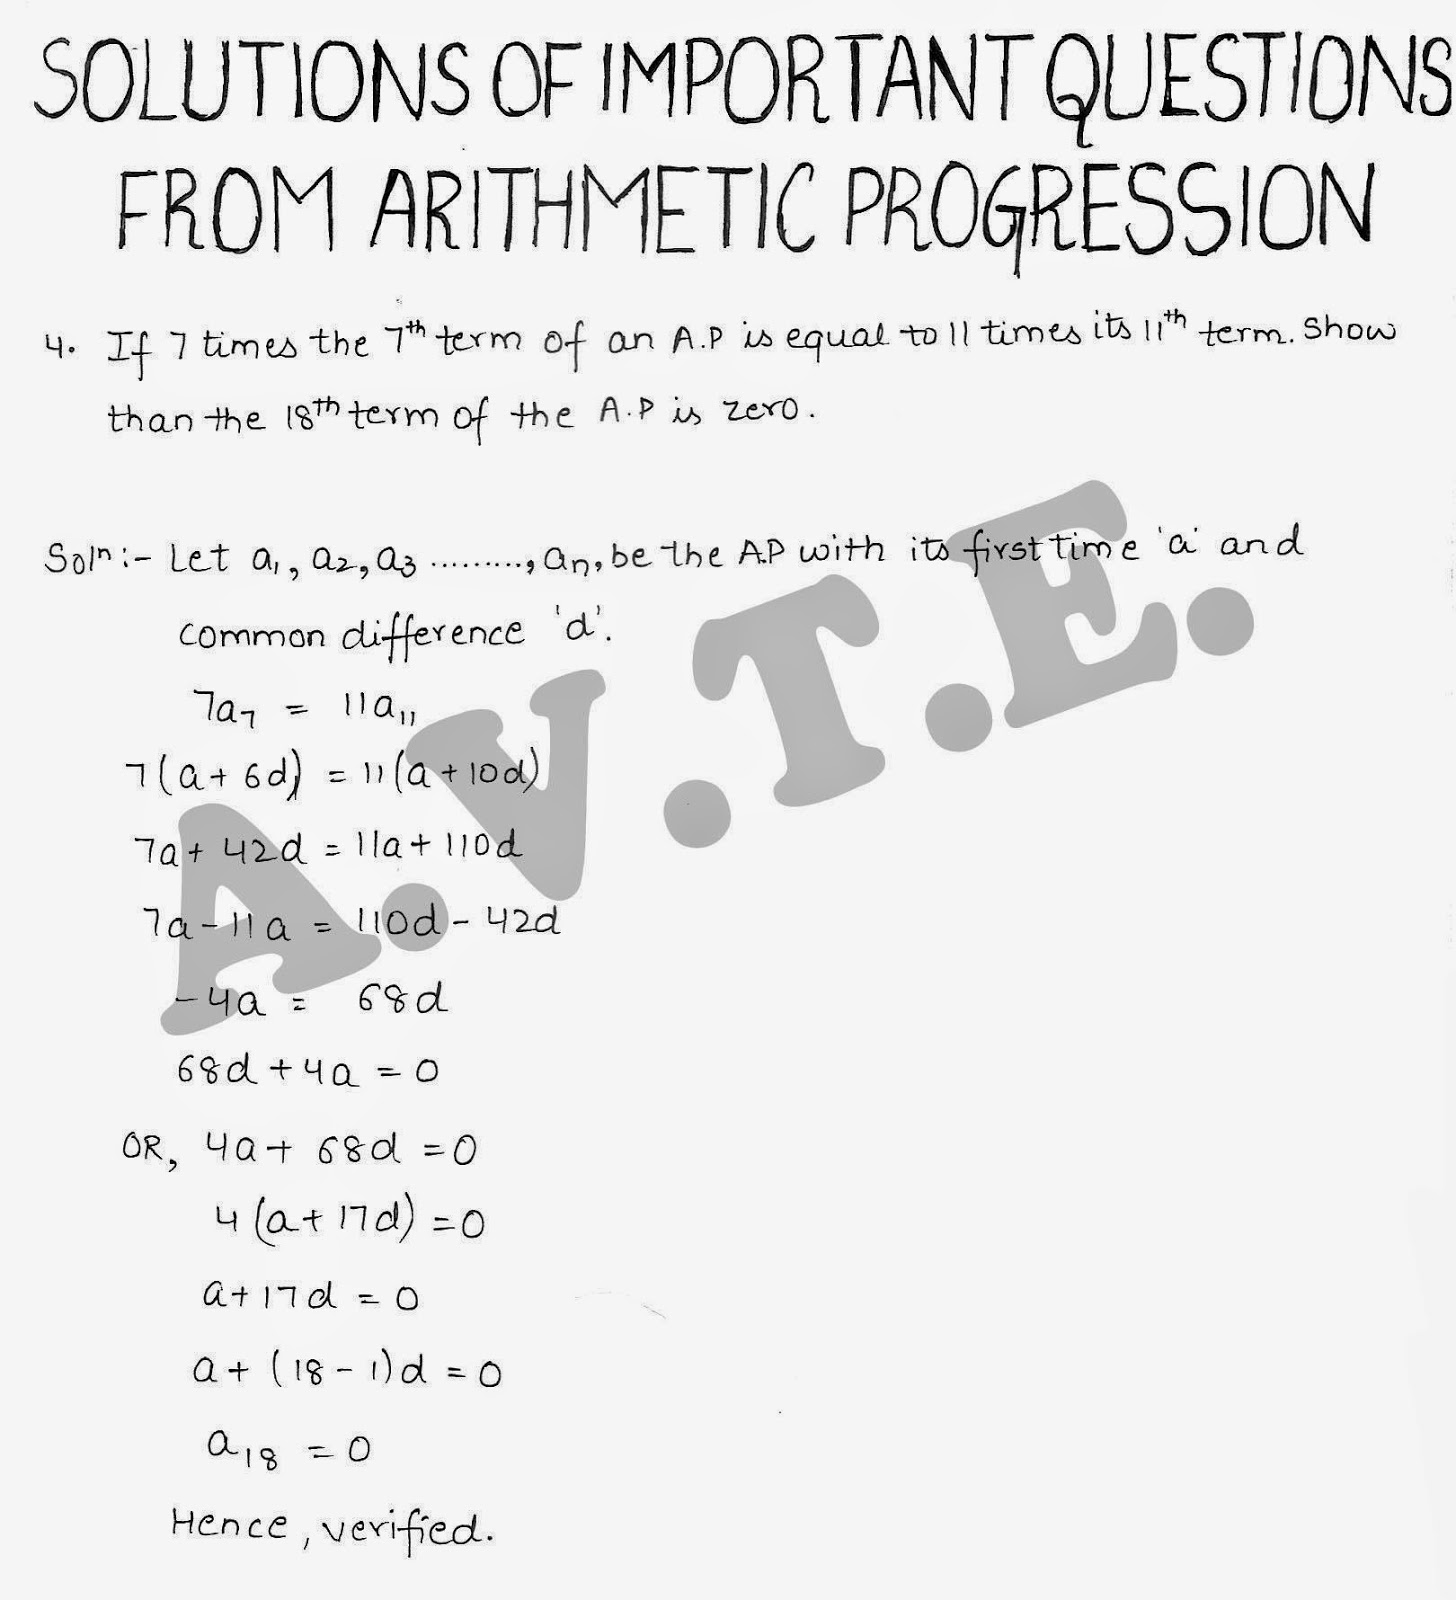 Maths4all: Solutions of Important Questions on AP Arithmetic ...